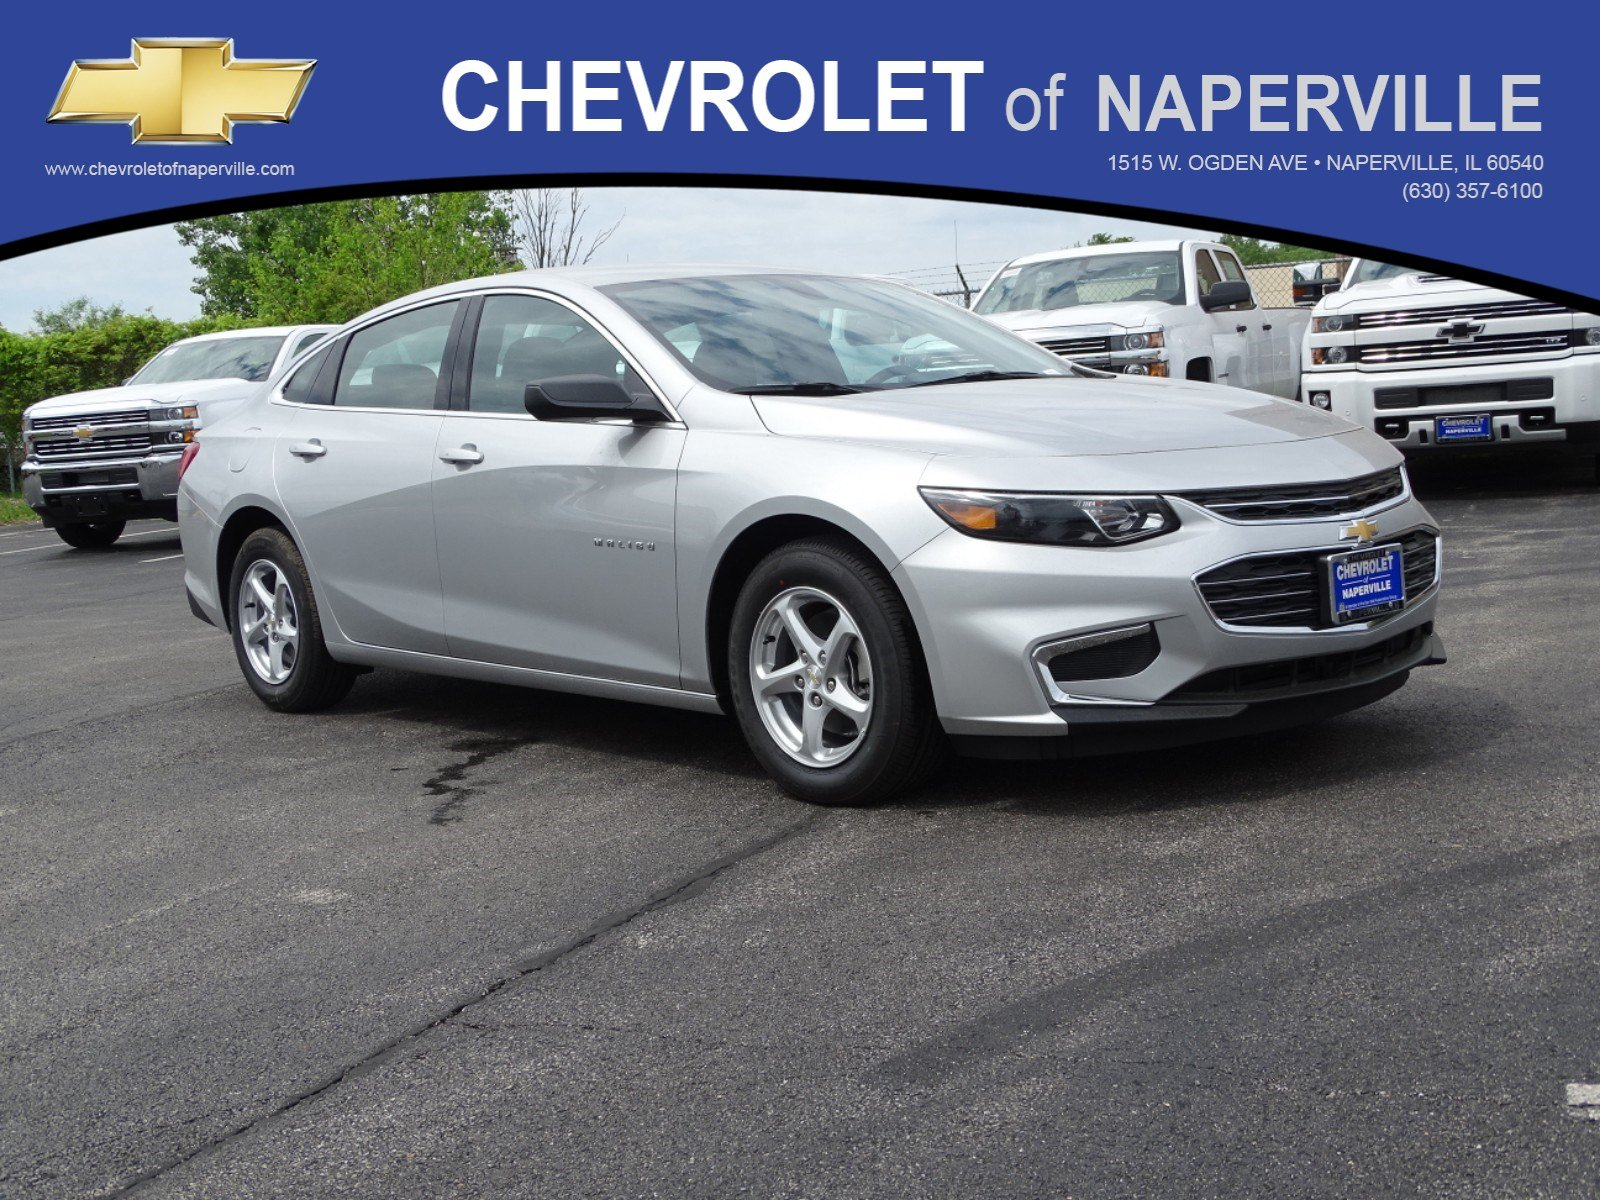 sale il acura beautiful awesome used pa for fresh montgomeryville in naperville rdx chevrolet dealer of